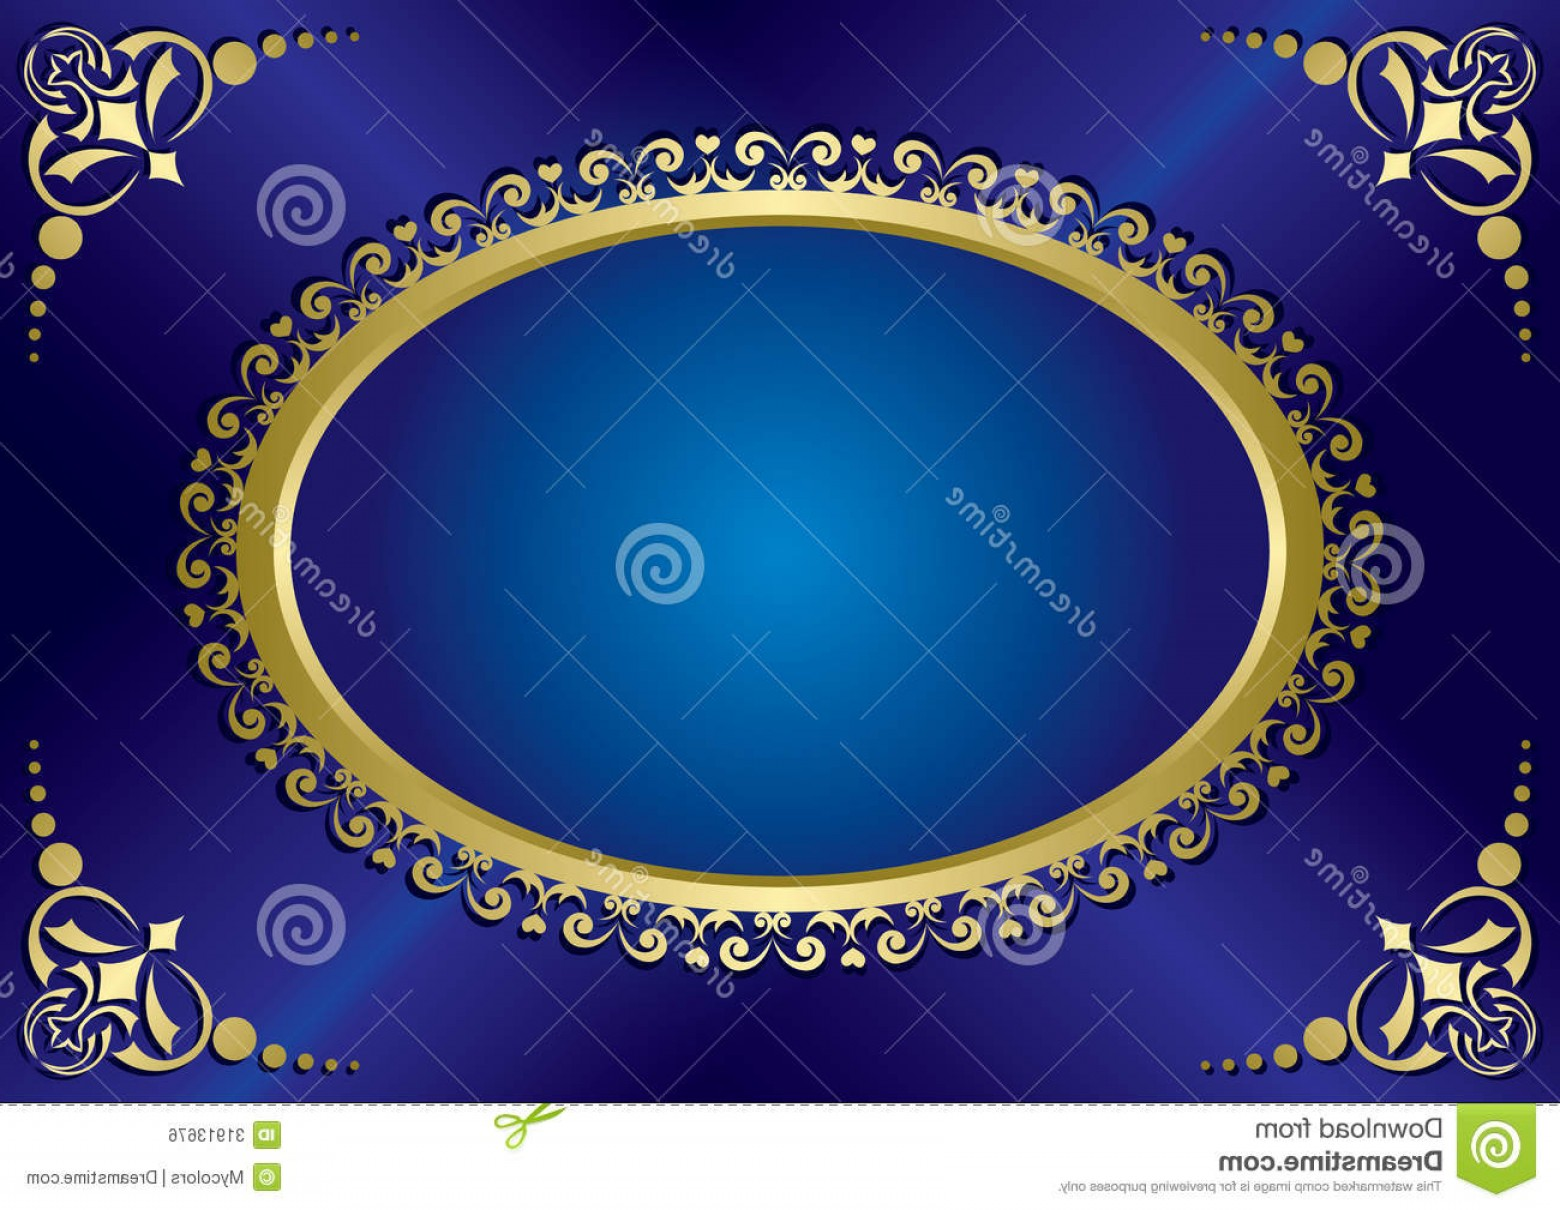 Blue And Gold Border Vector: Royalty Free Stock Image Blue Elegant Vintage Card Gold Frame Vector Eps Image